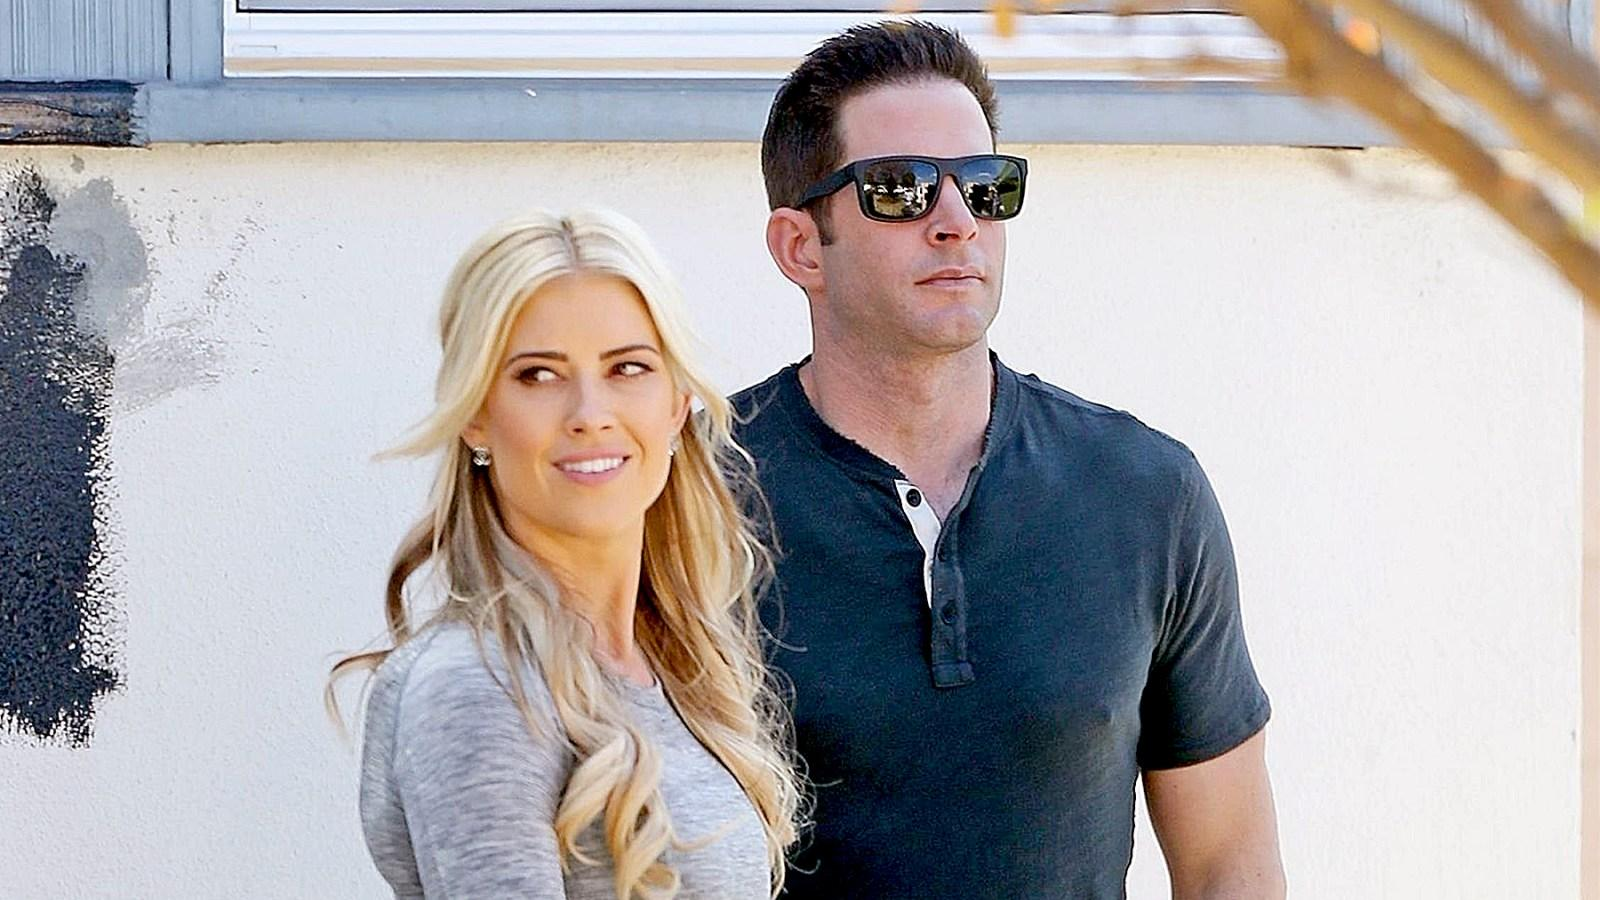 Christina El Moussa Shares That She And Tarek Live Only 2 Streets Away From One Another!